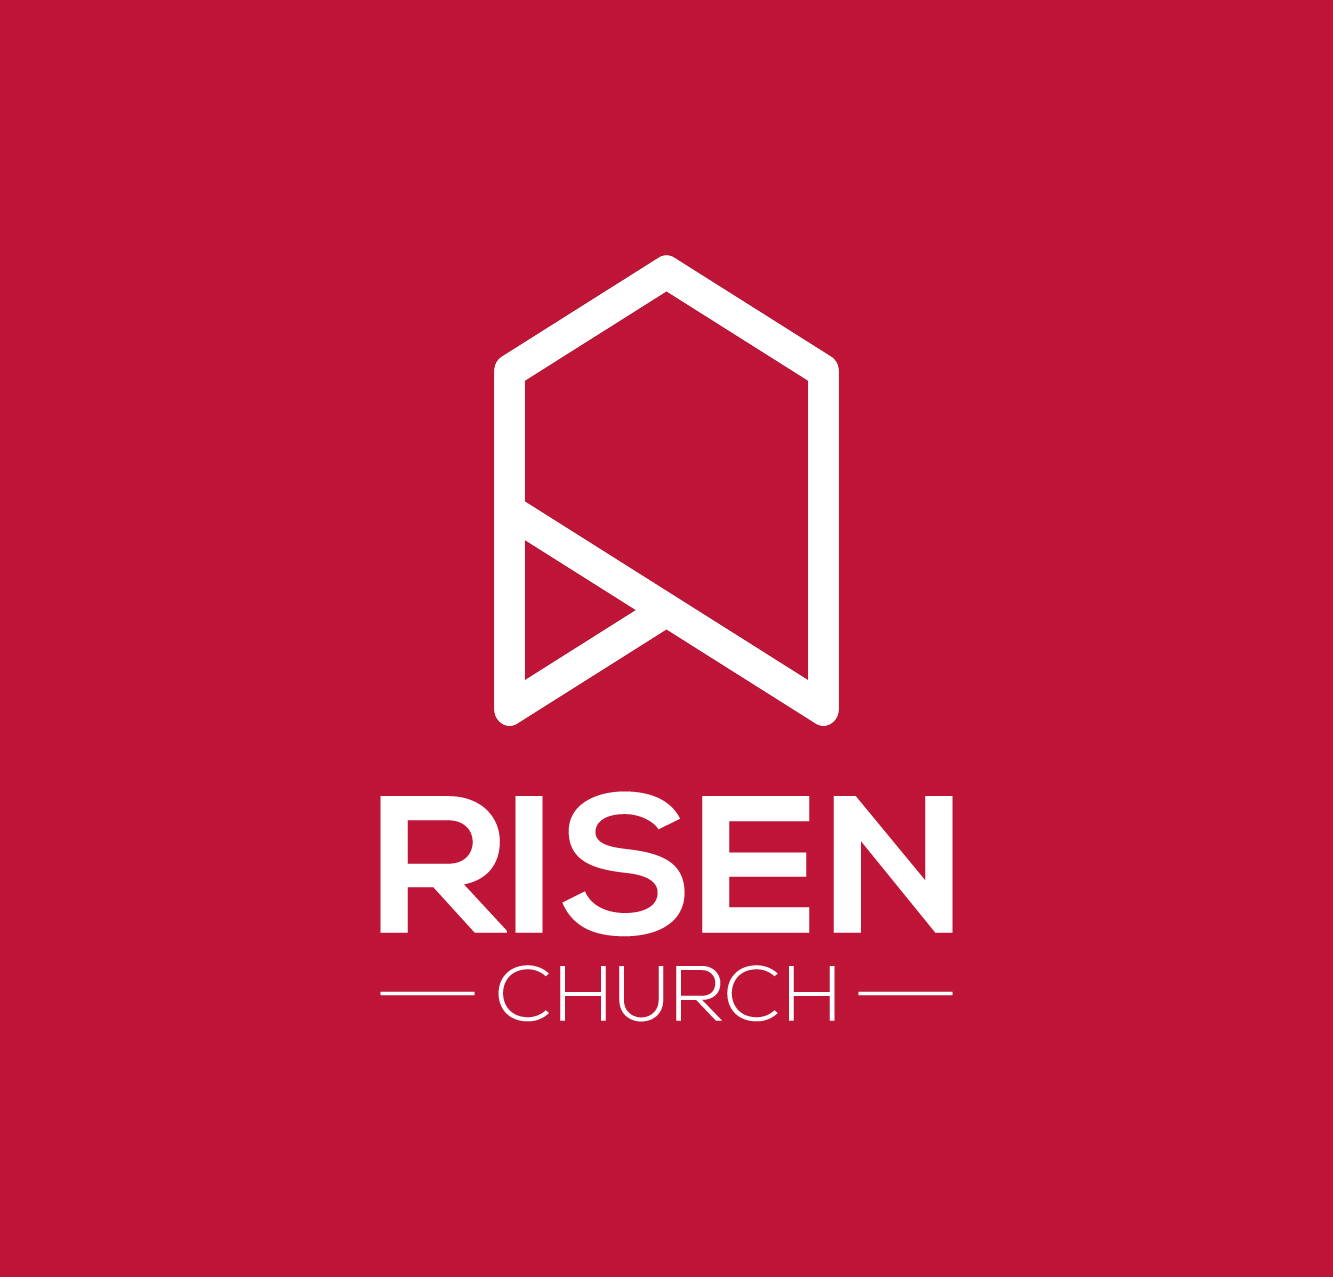 Risen Church